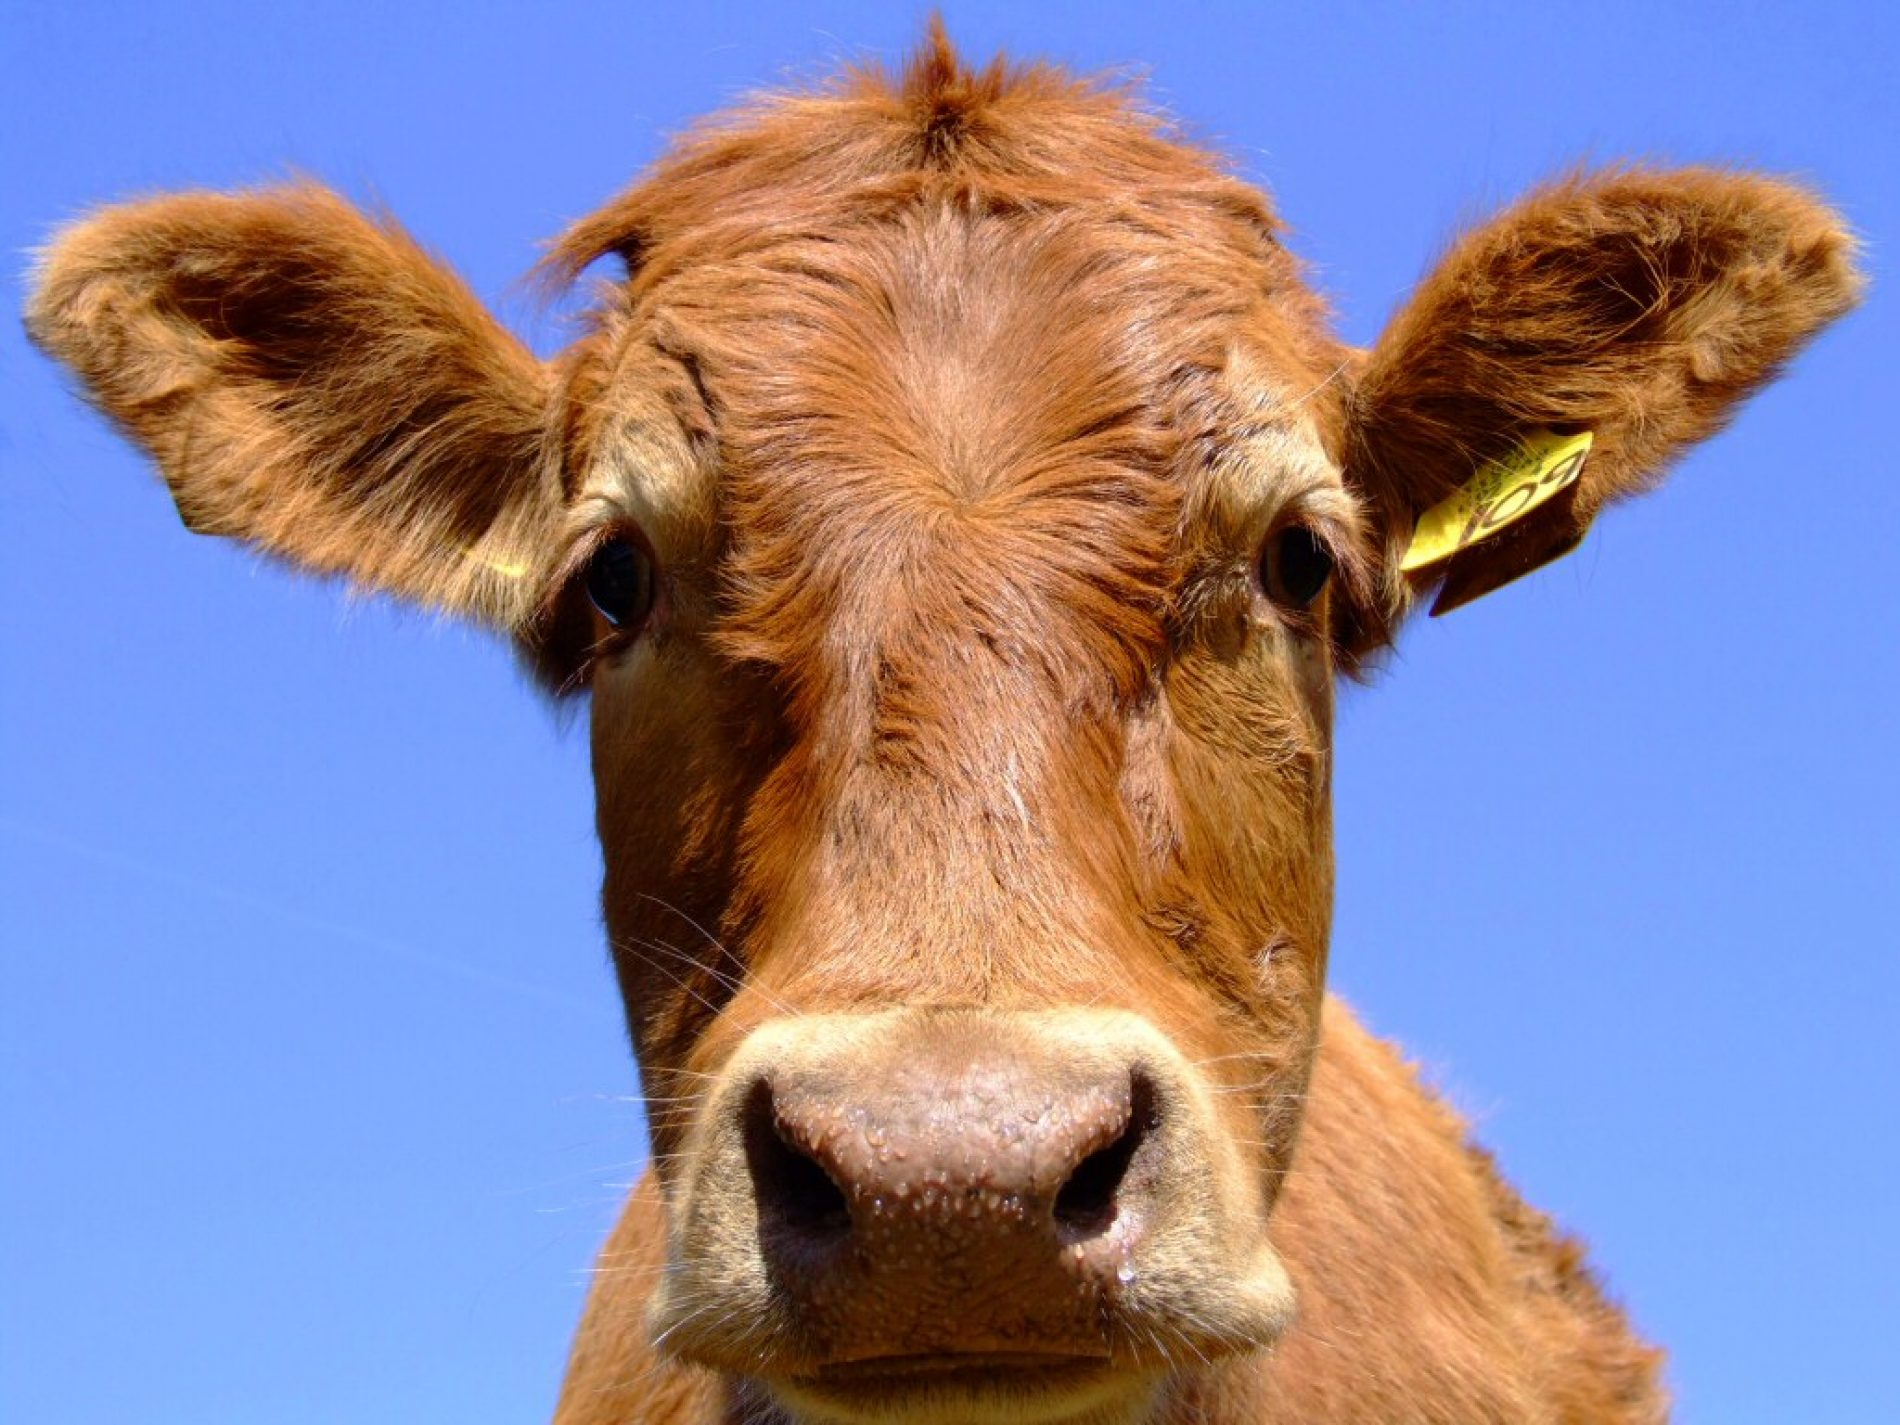 Zimbabwe: Agriculture Notes Concern Reports of Foot-and-Mouth Disease Outbreak in Zimbabwe